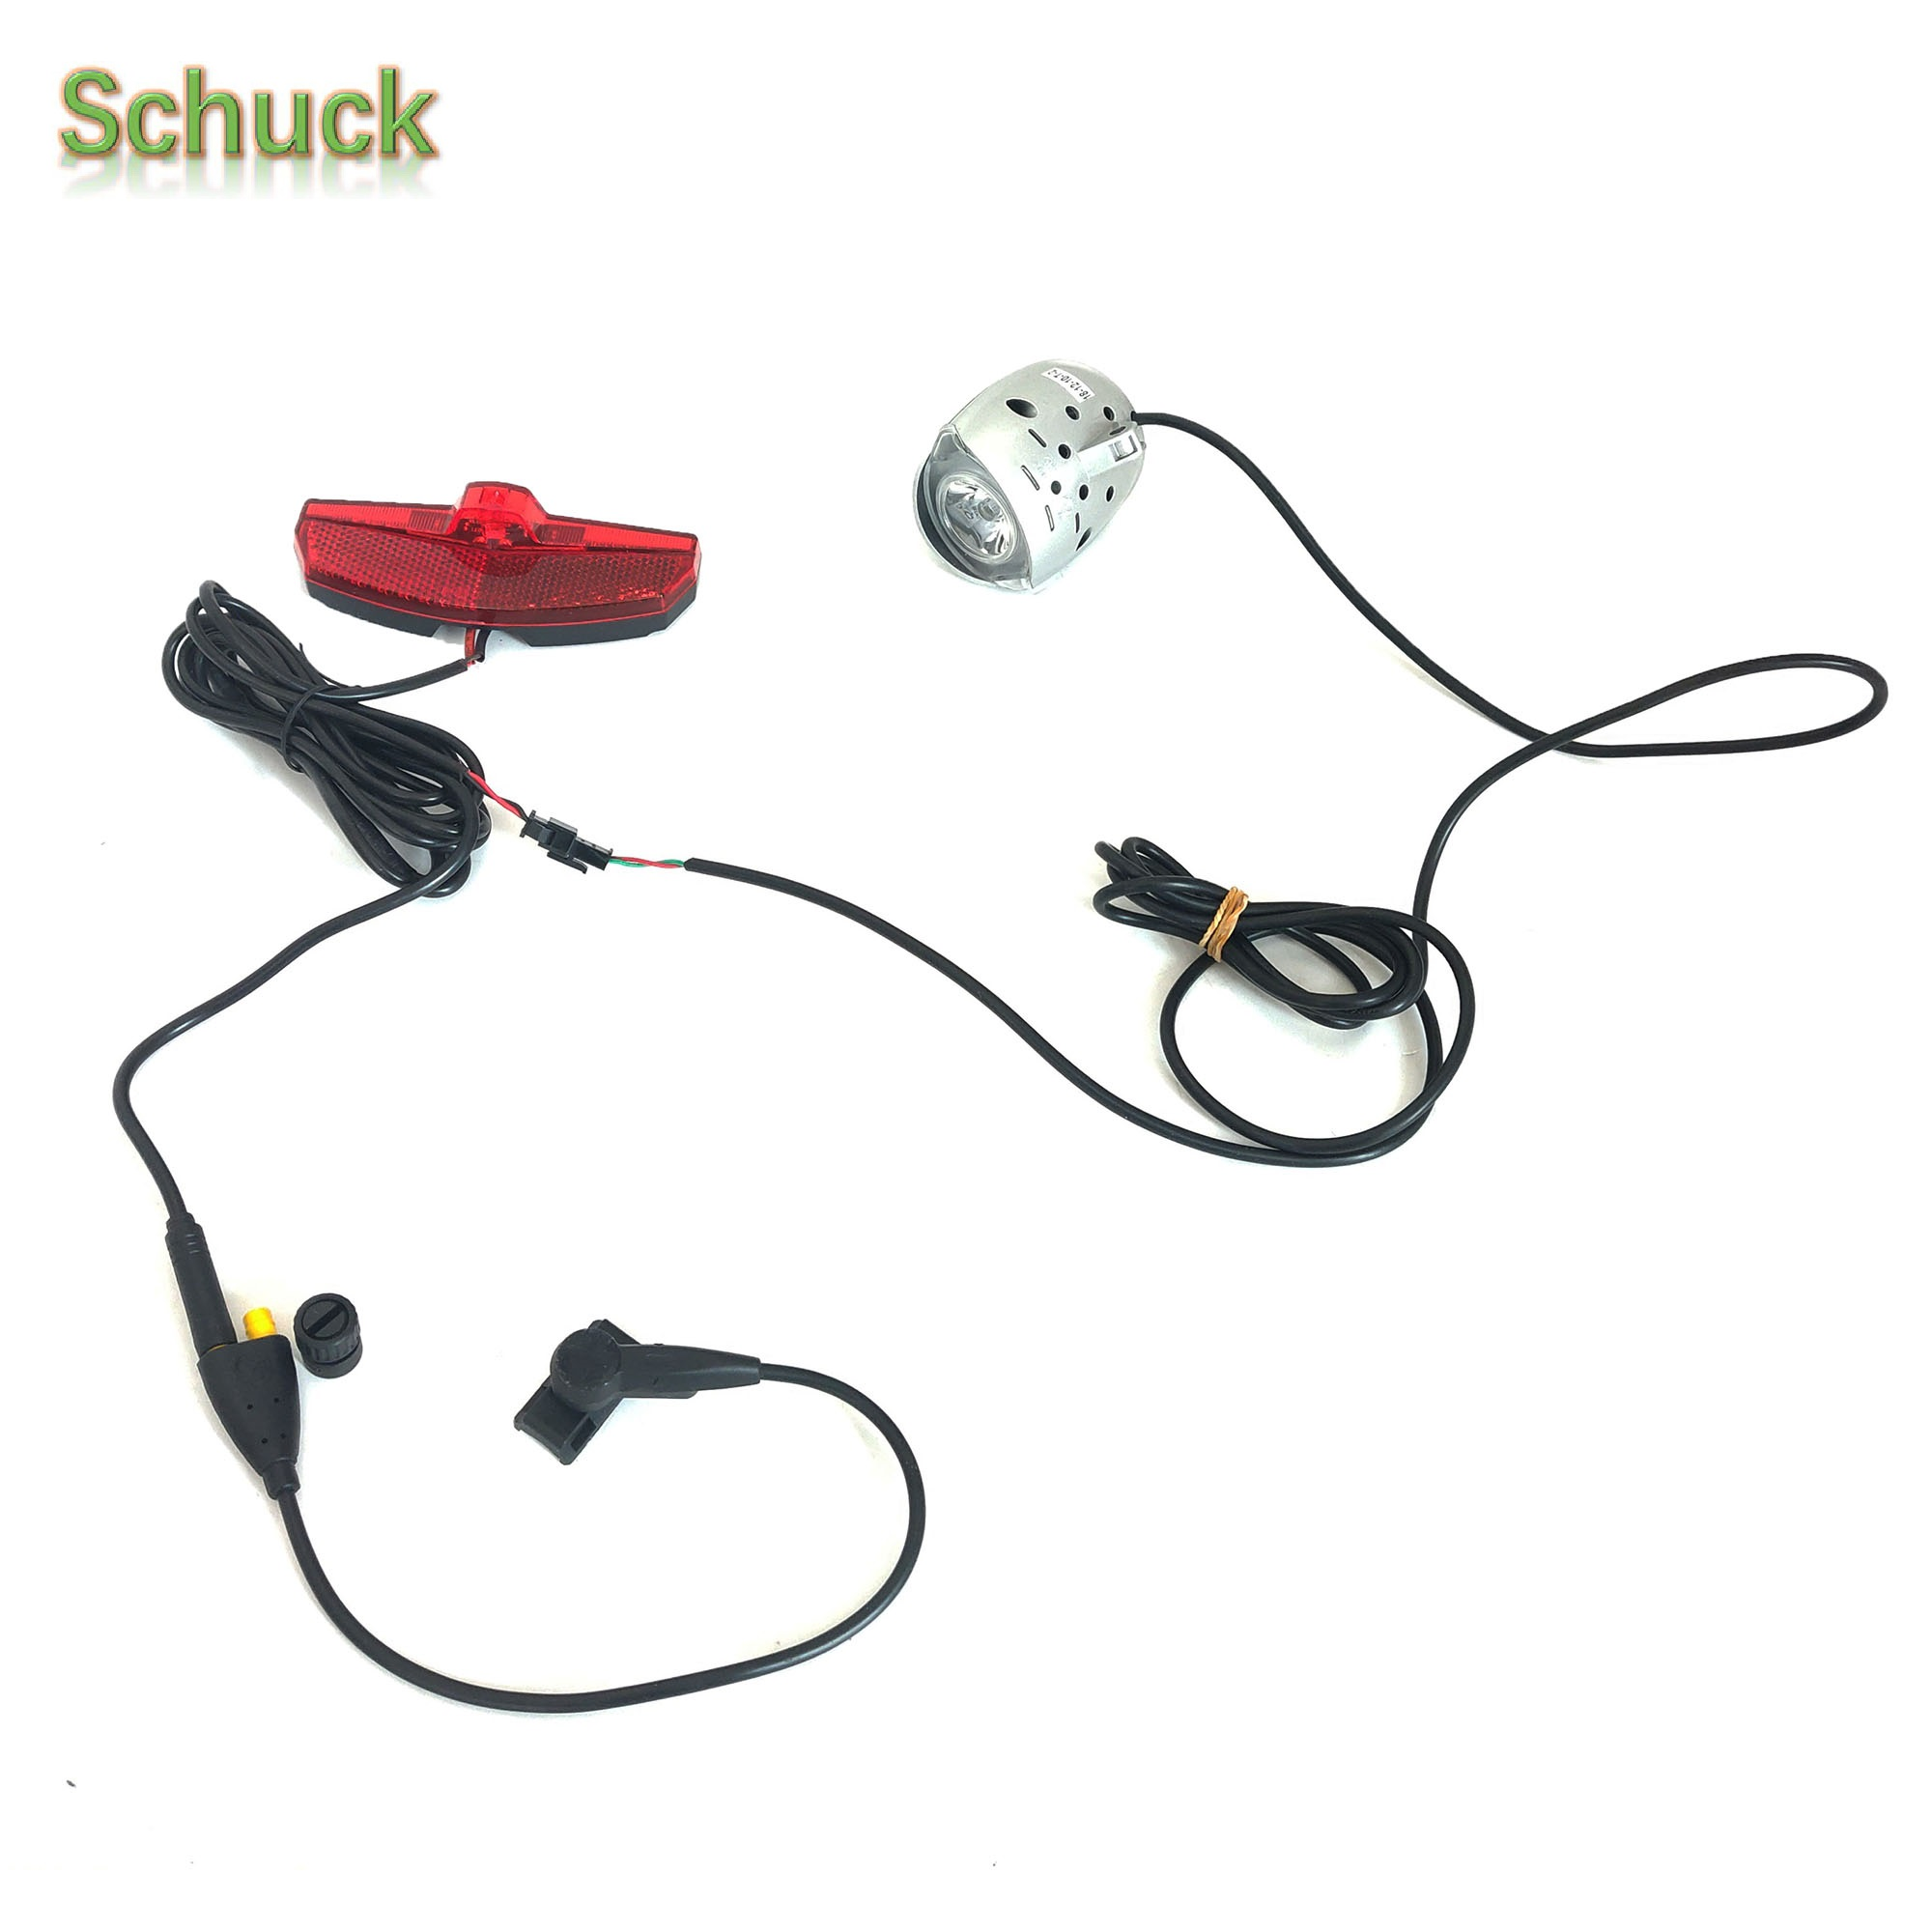 Schuck TSDZ2 Speed Sensor with Y Splitter for Headlight and Taillight Connections For 6V Lamp